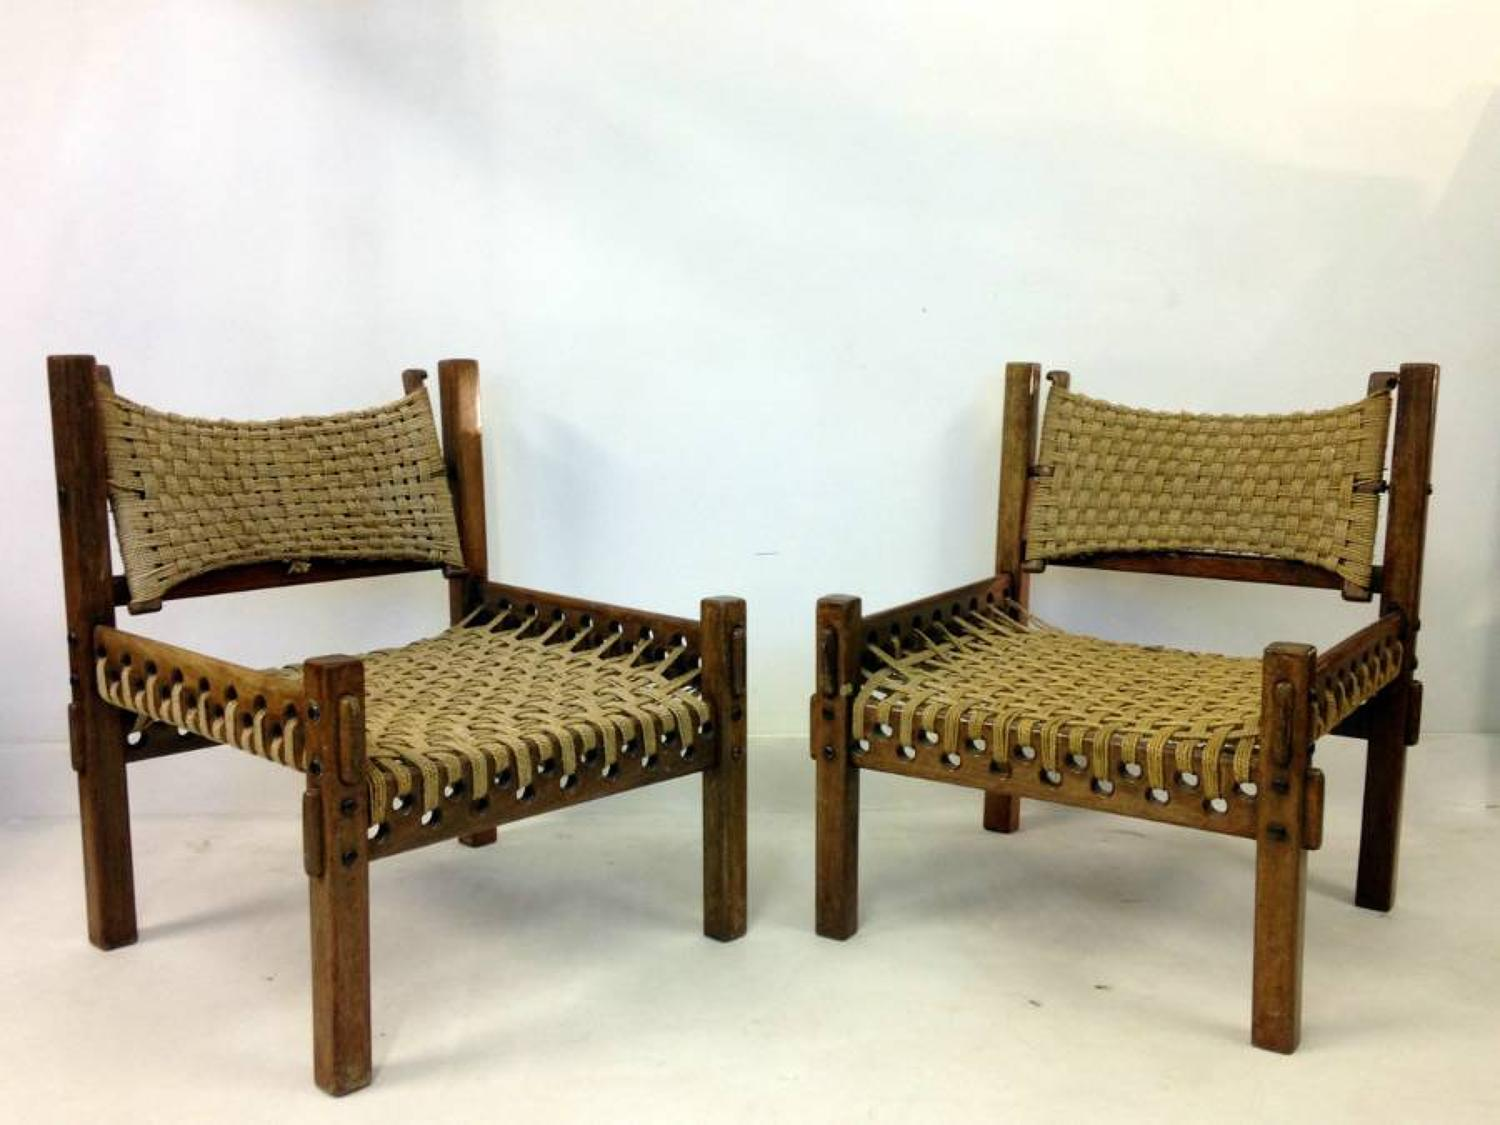 A pair of teak and rope chairs